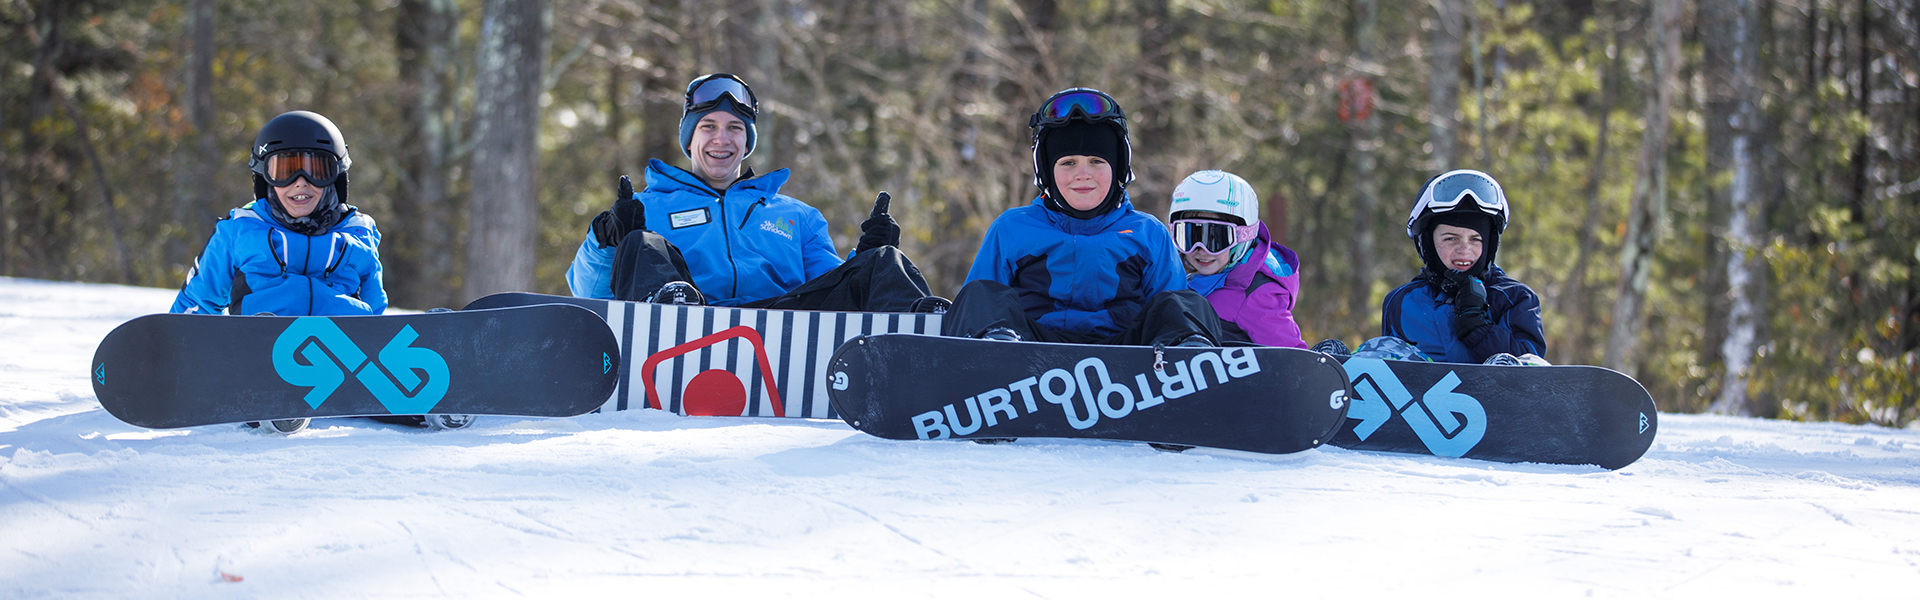 Snowboard instructor with group of students sitting on trail